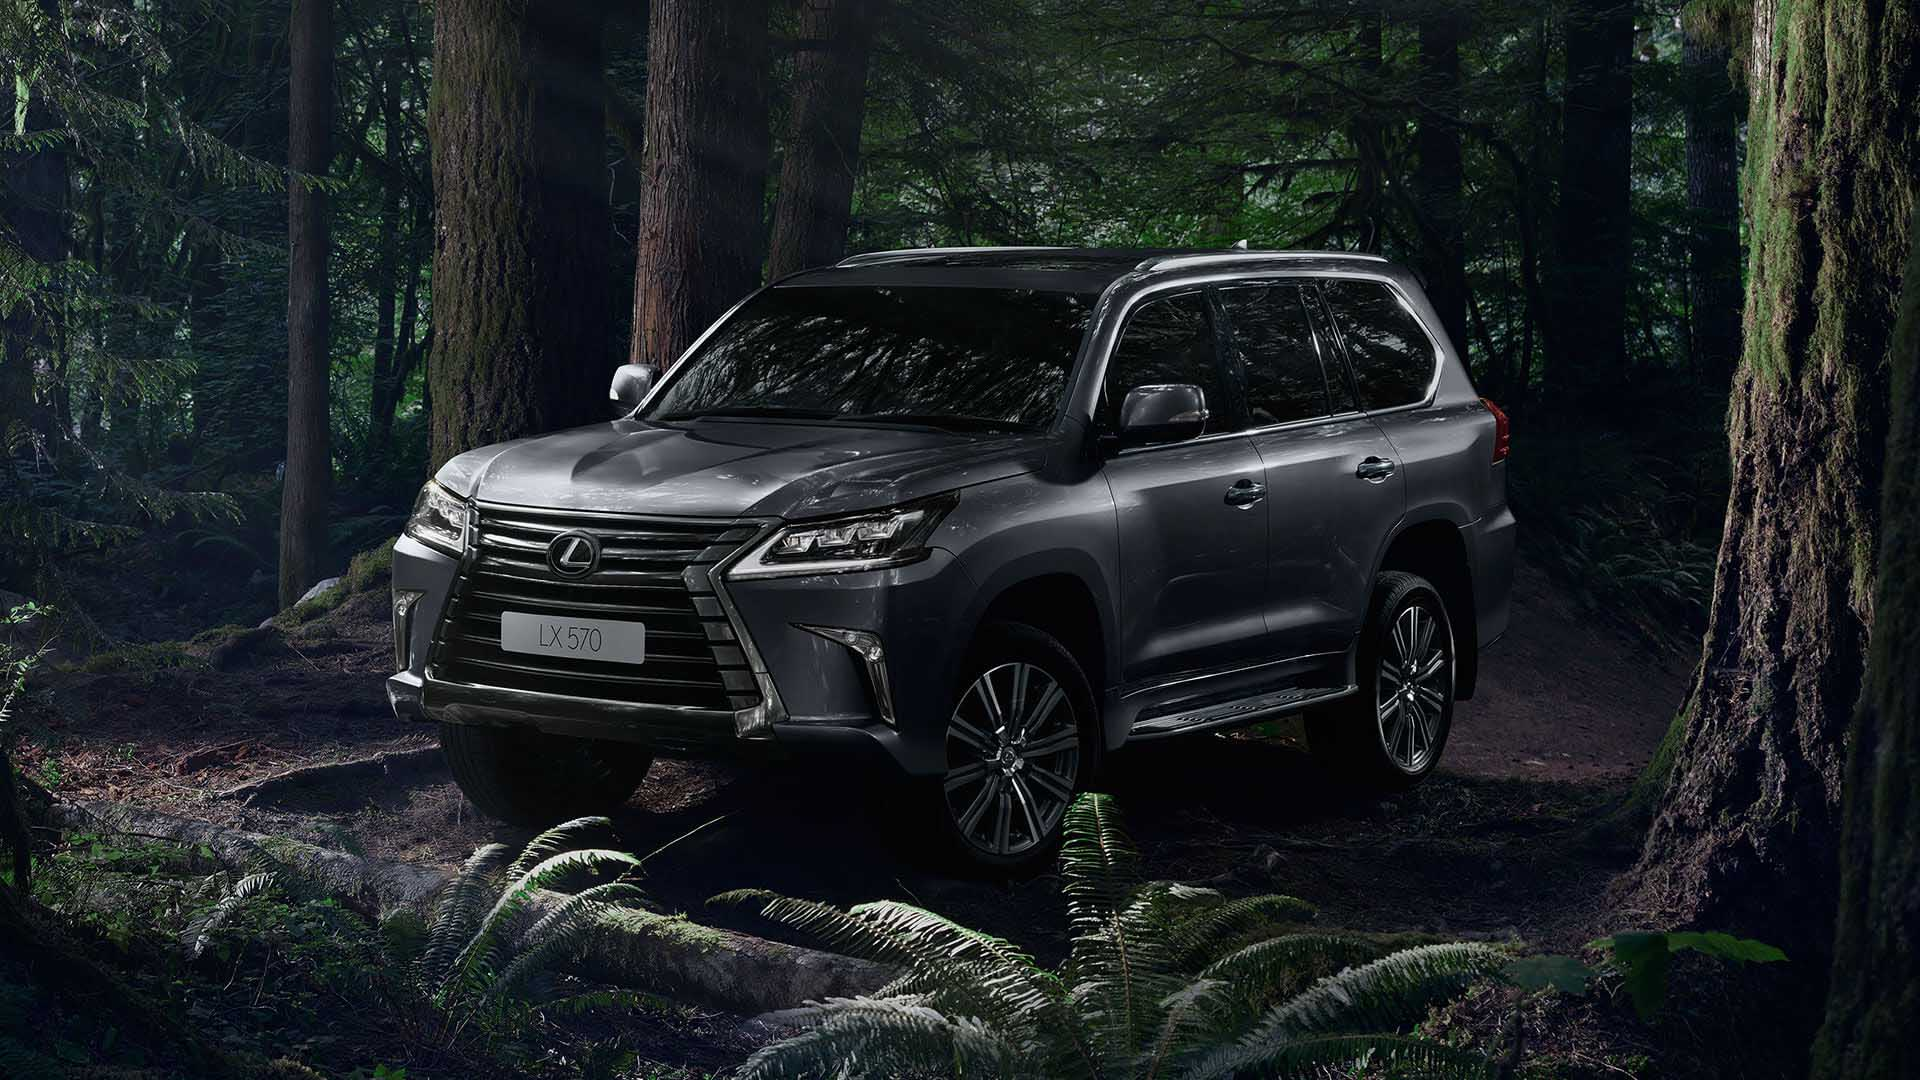 2017 lexus lx 570 key features